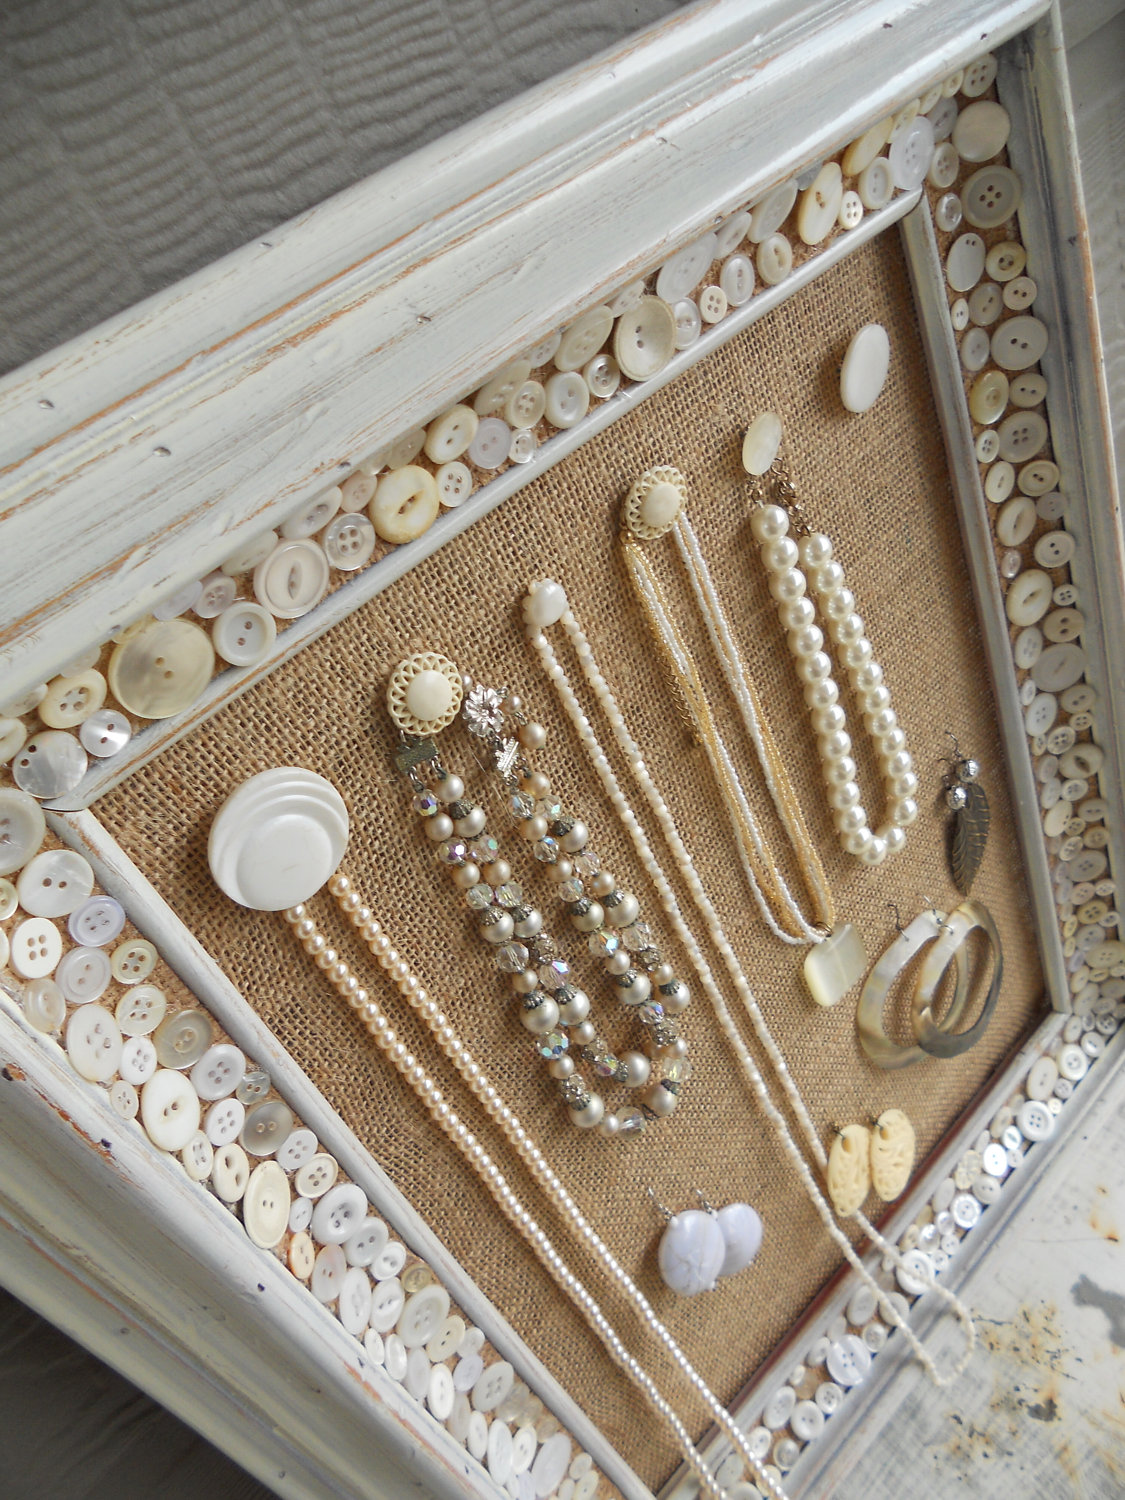 Jewelry display ideas using a photo frame with a board or simply just a cloth secured in the background, and different knobs placed on it for hanging necklaces and earrings, a great idea for a display stand.